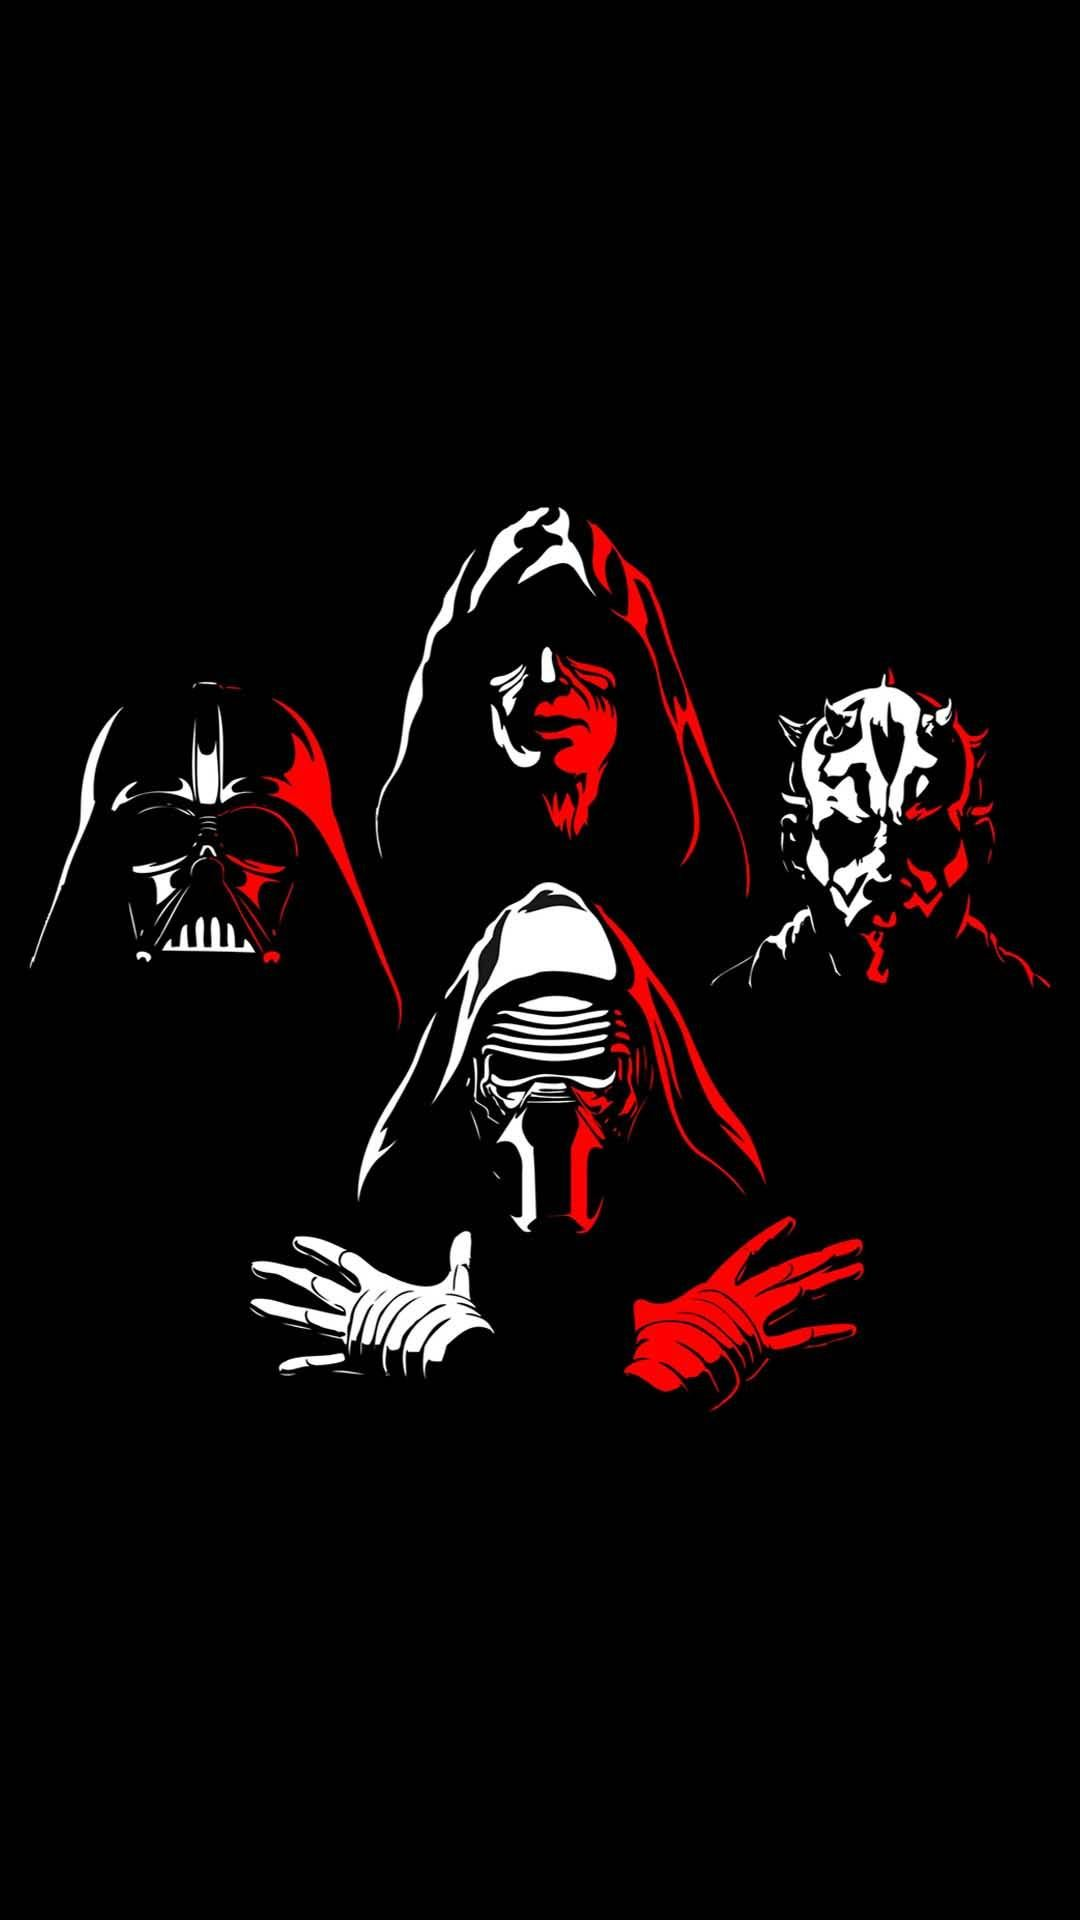 Star Wars Wallpaper Star Wars Wallpaper Star Wars Drawings Star Wars Background